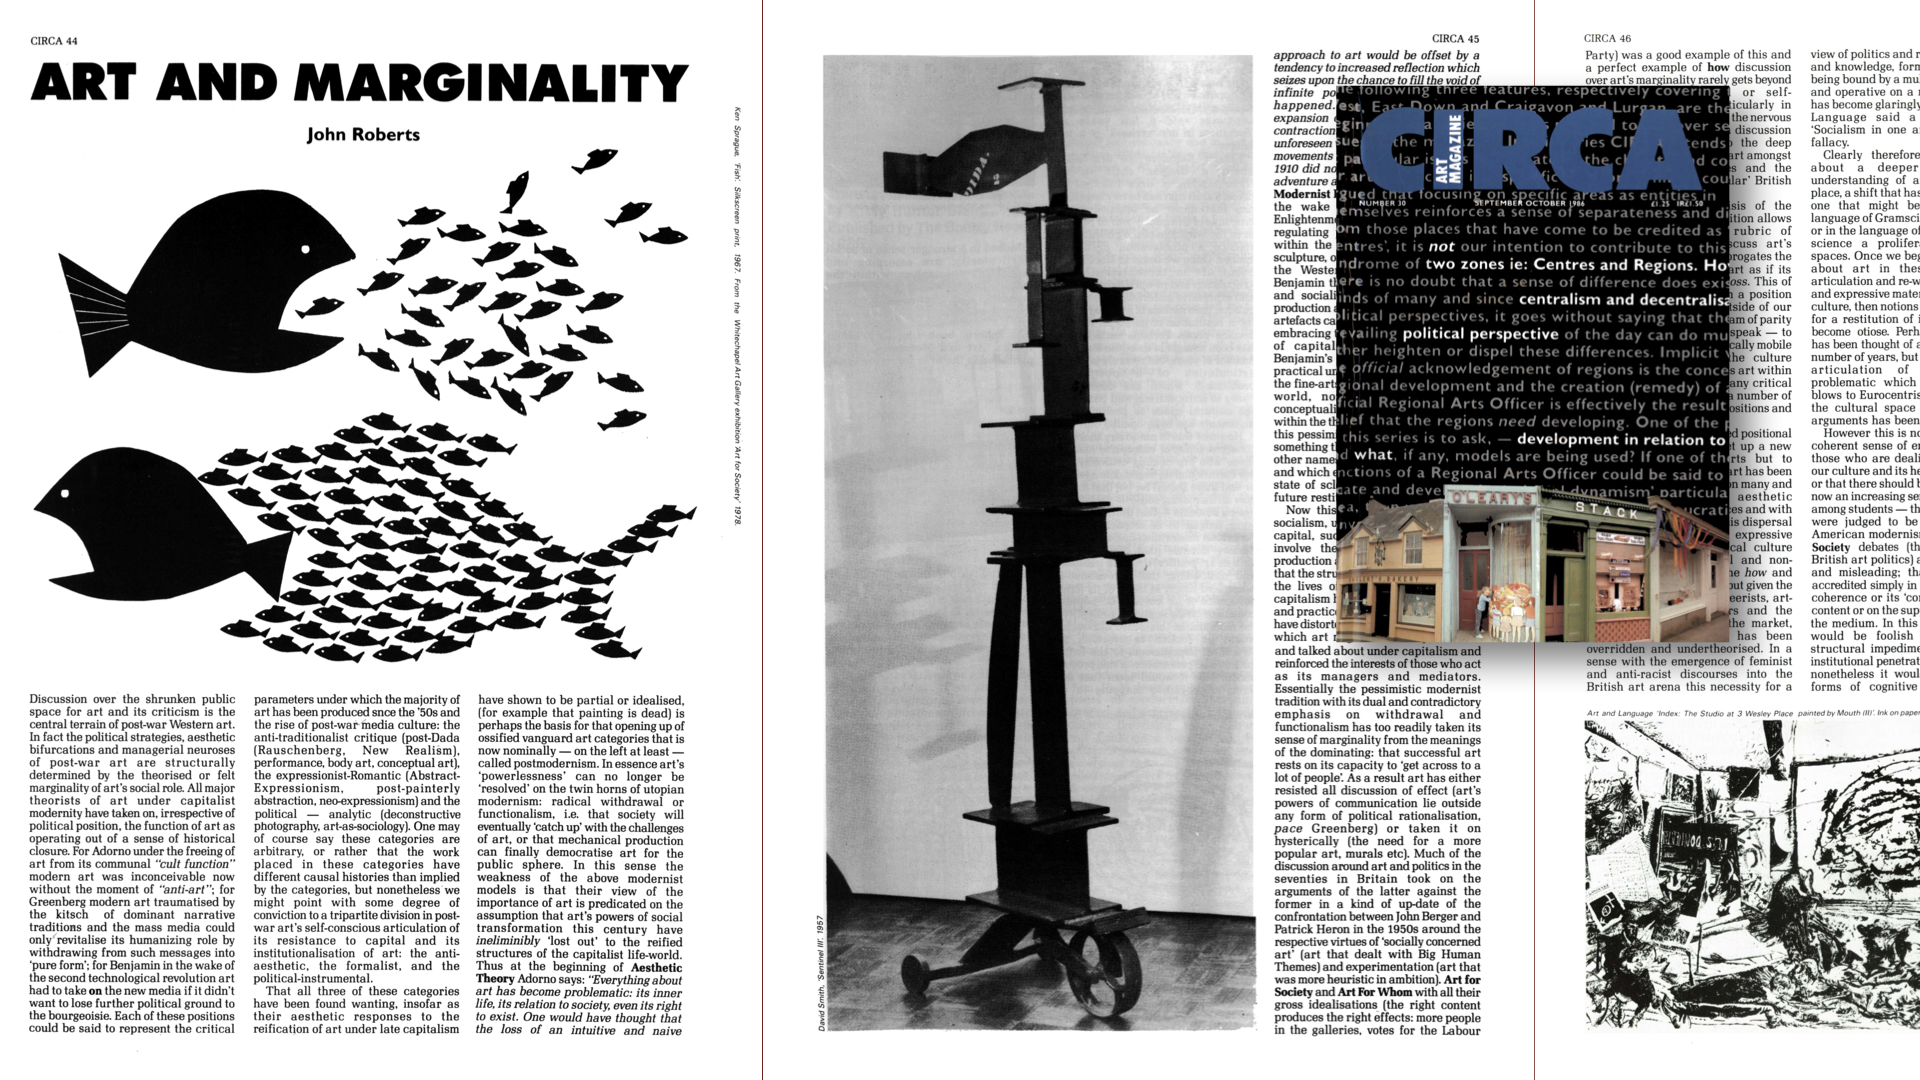 CIRCA Issue #30 – John Roberts / Art and Marginality